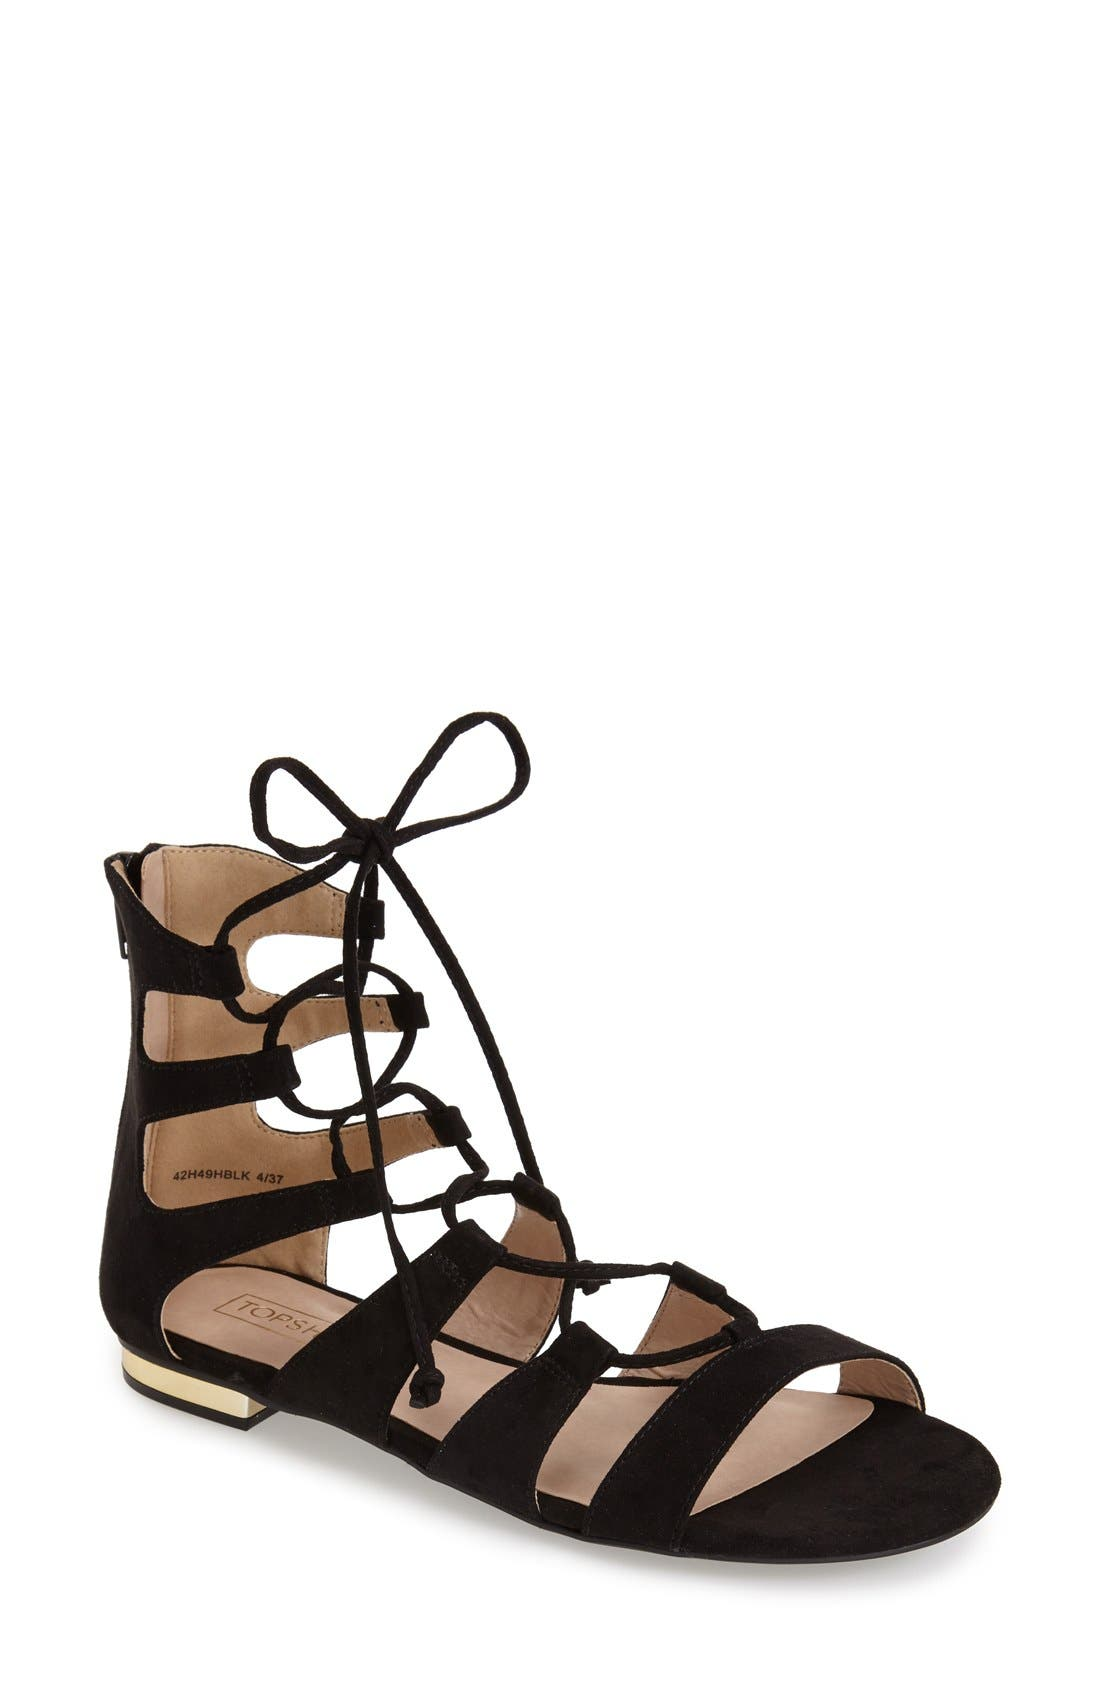 TOPSHOP Lace-Up Gladiator Sandal, Main, color, 001